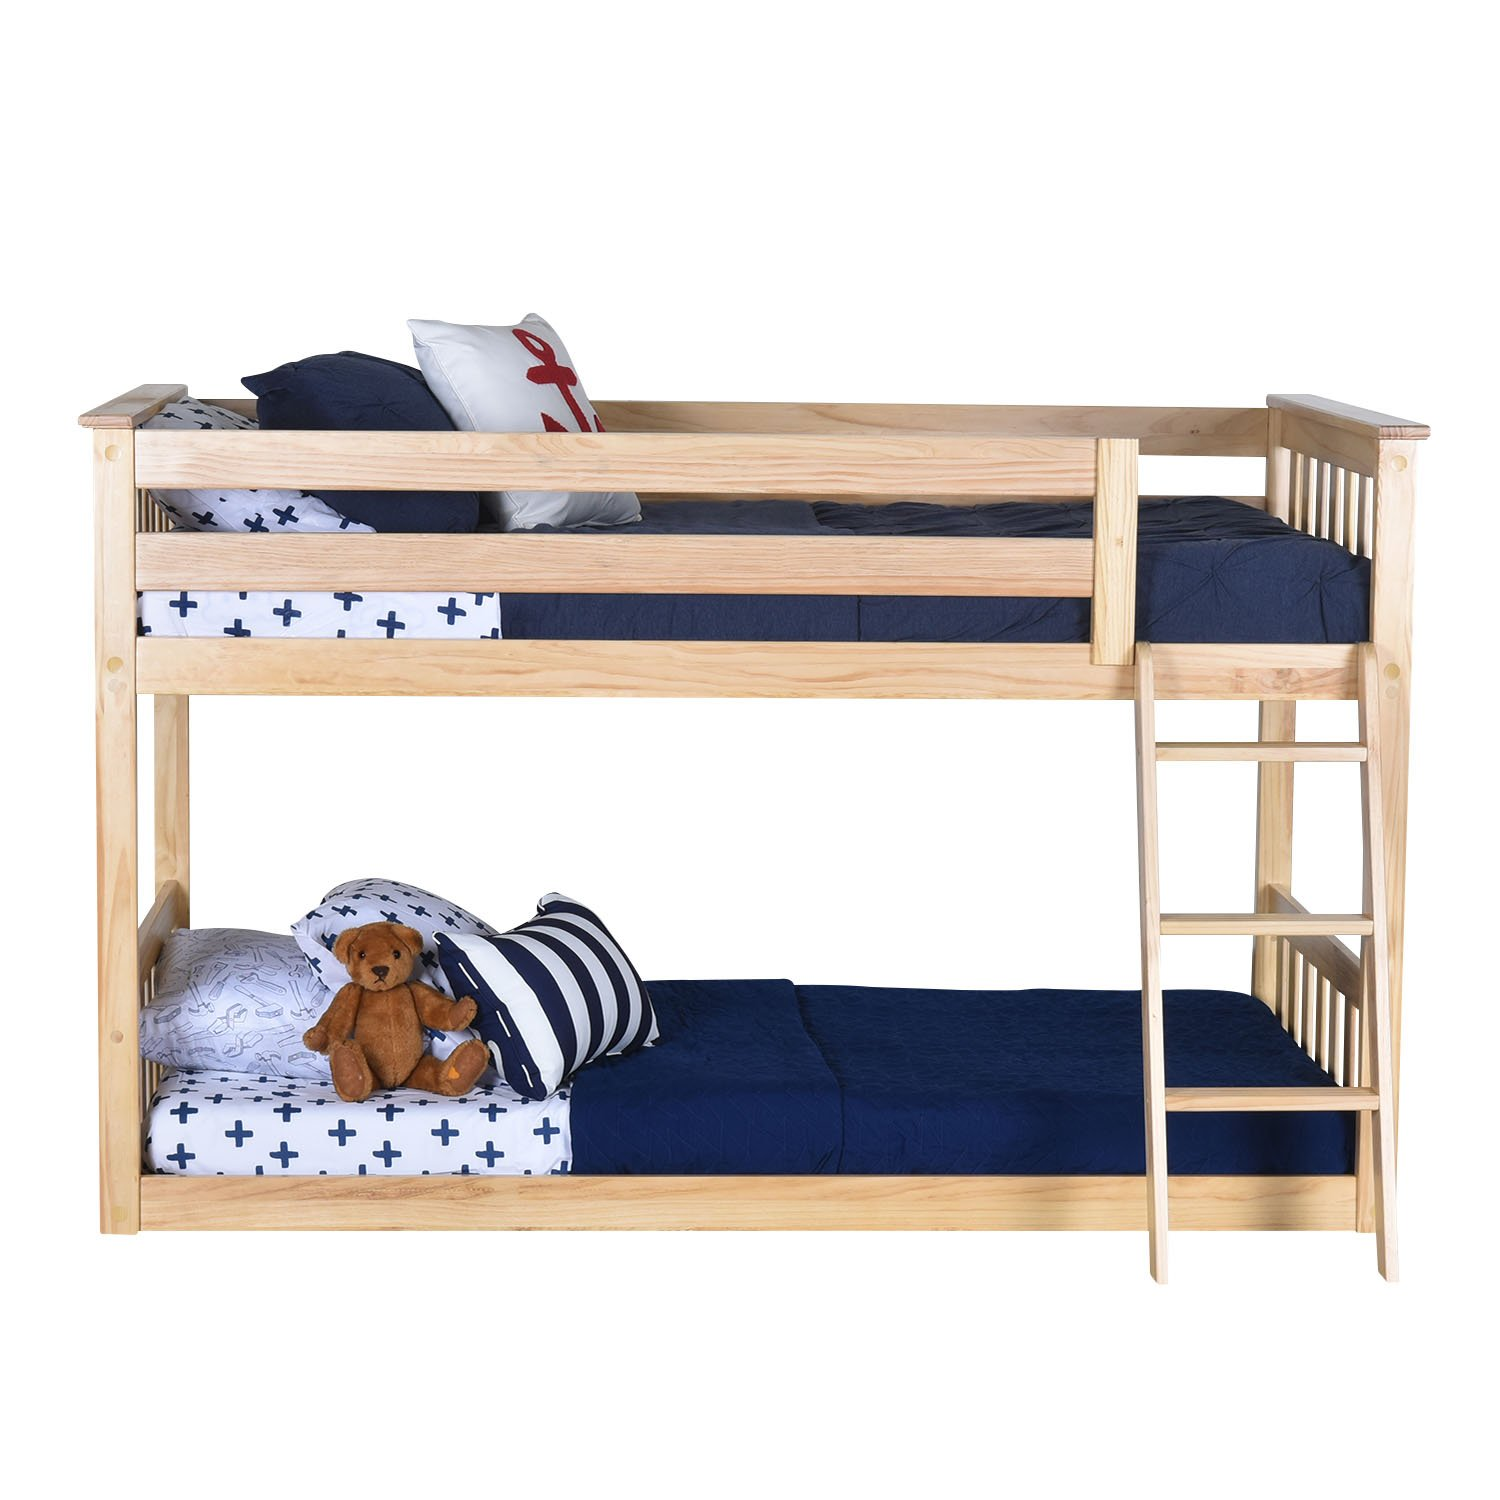 also bunk line buddy light beds the low single numbers following webster manufacturer ceiling oak under bb listed bed sku temple sometimes is